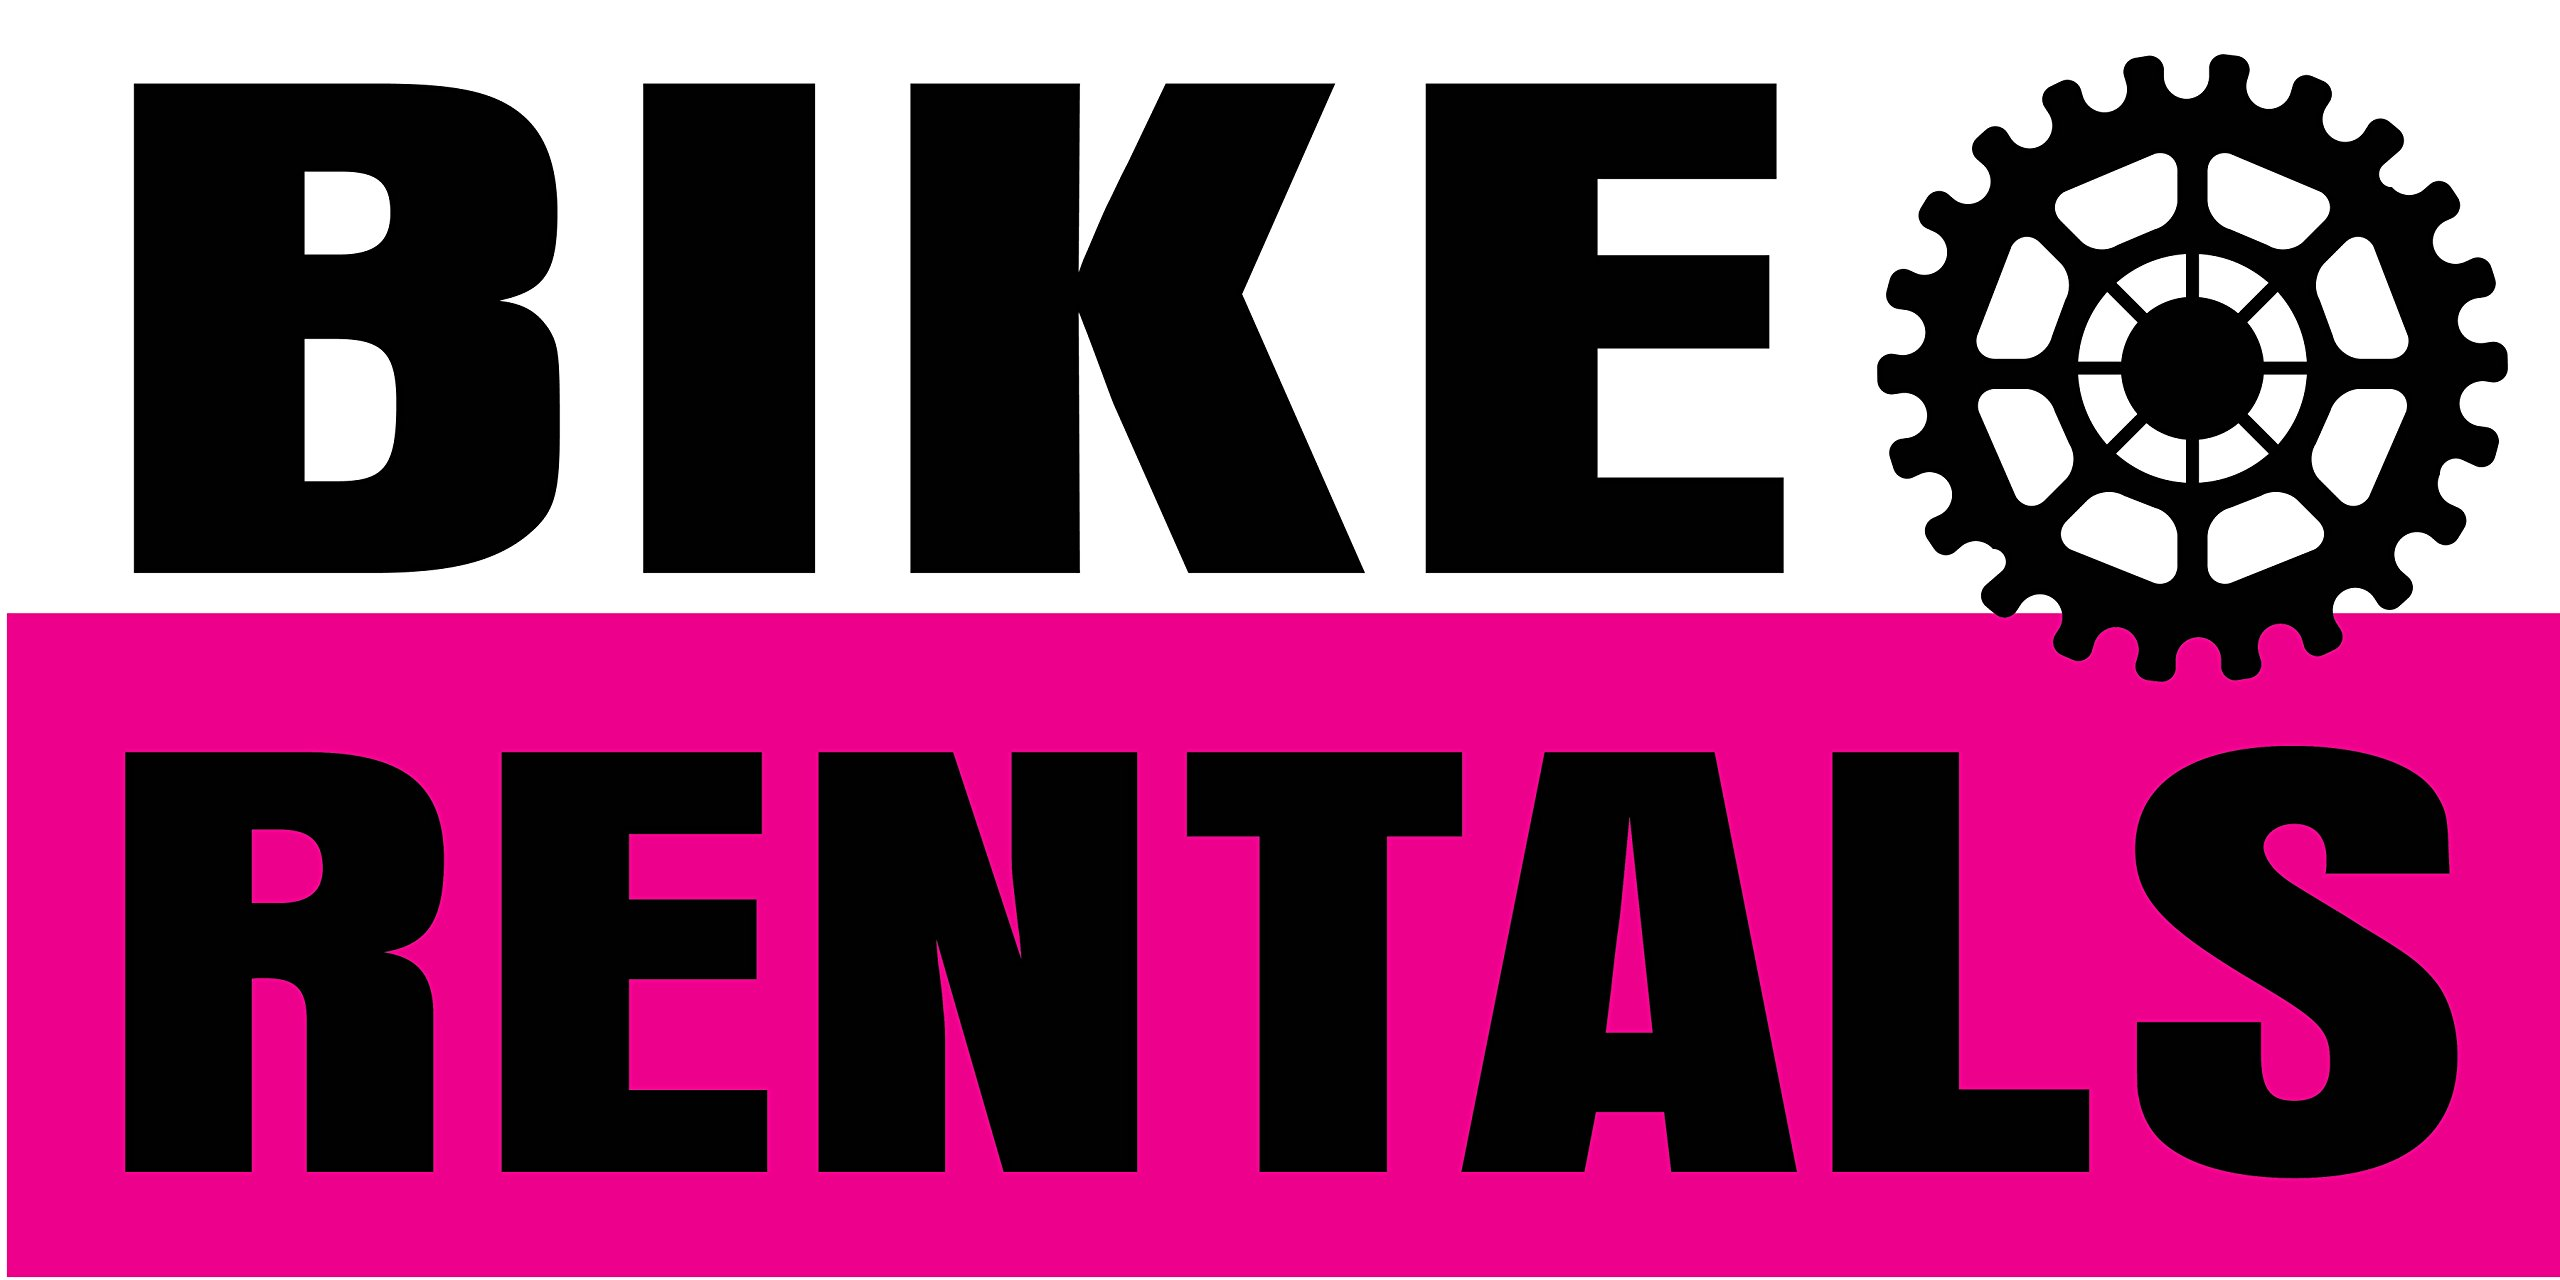 Pre-Printed Bike Rentals Banner - Stripe - Pink (10' x 5') by Reliable Banner Sign Supply & Printing